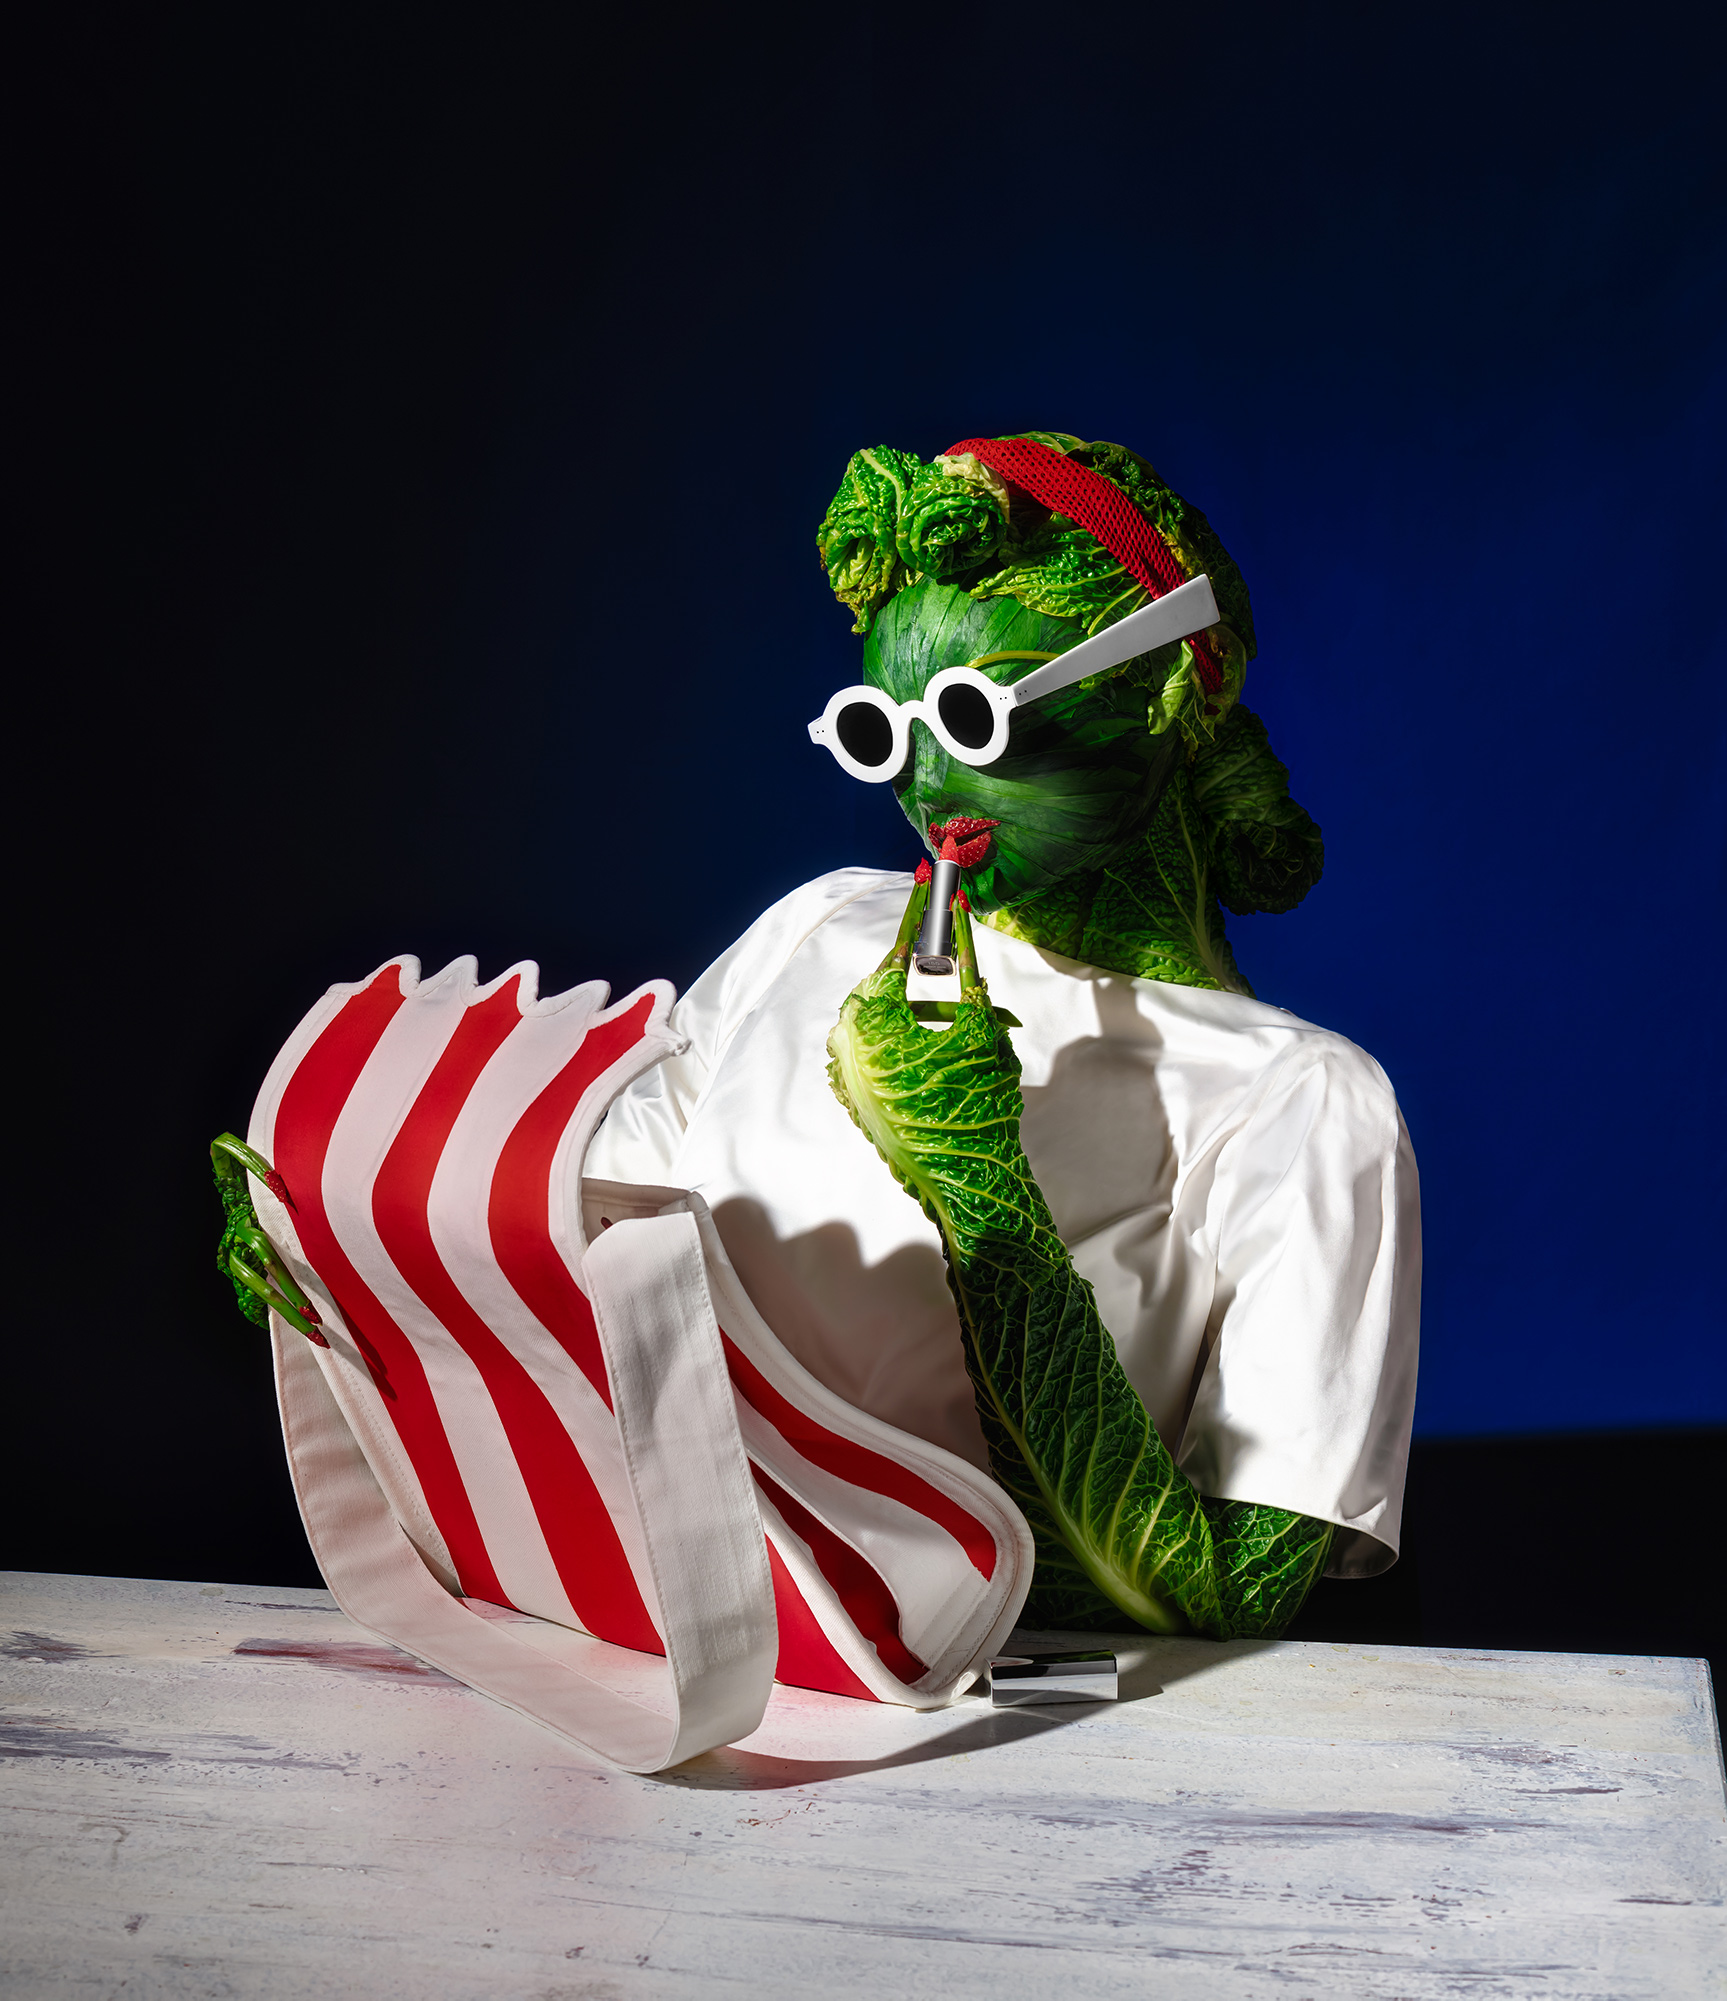 Fashion meets food, veggie sculpture doing her make up with white and red striped handbag.